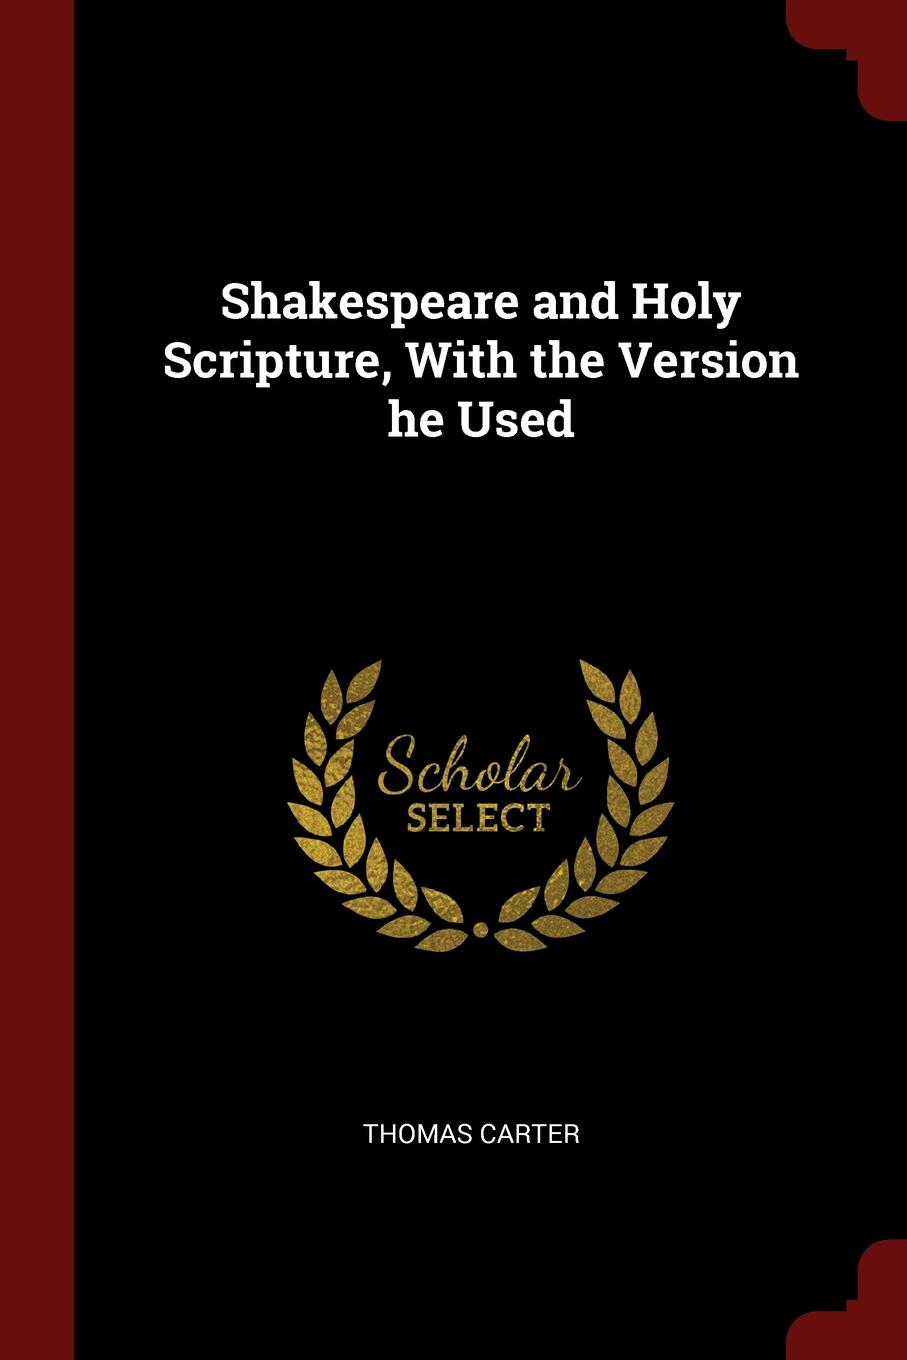 Shakespeare and Holy Scripture, With the Version he Used